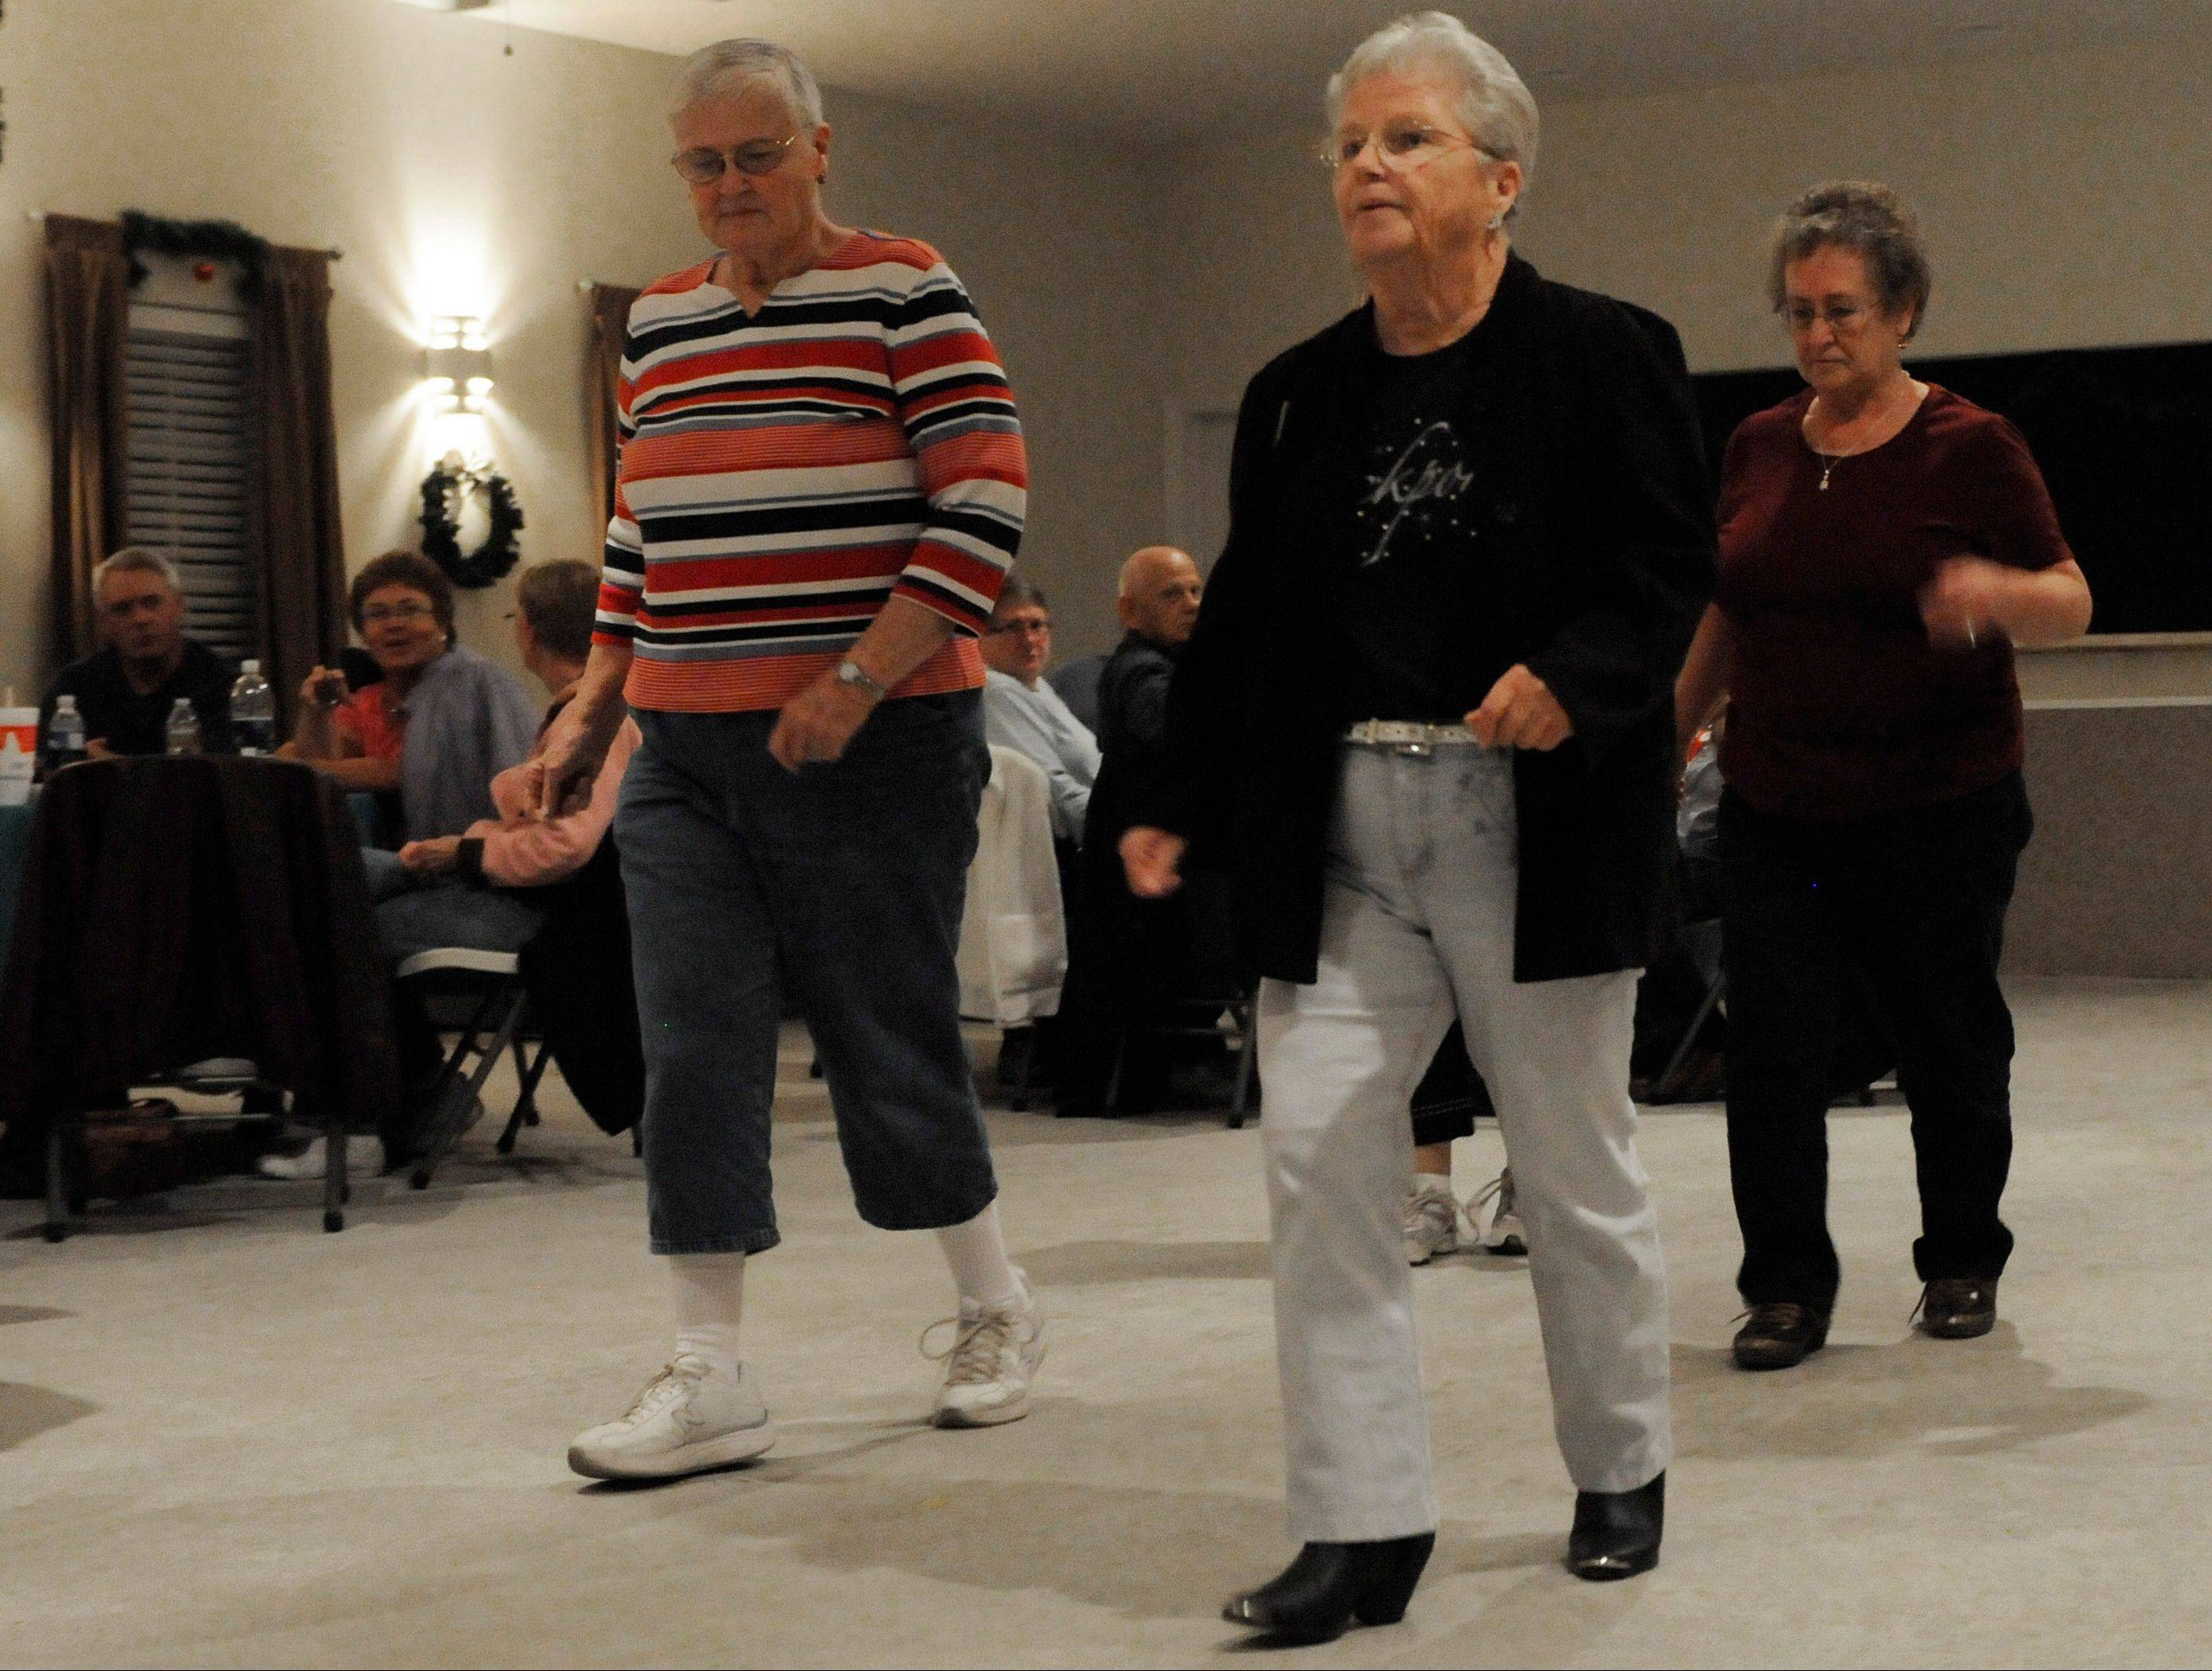 Phyllis Hampton, center, leads a group of dancers at the Drifters Resort community Hall in Rockport, Texas.